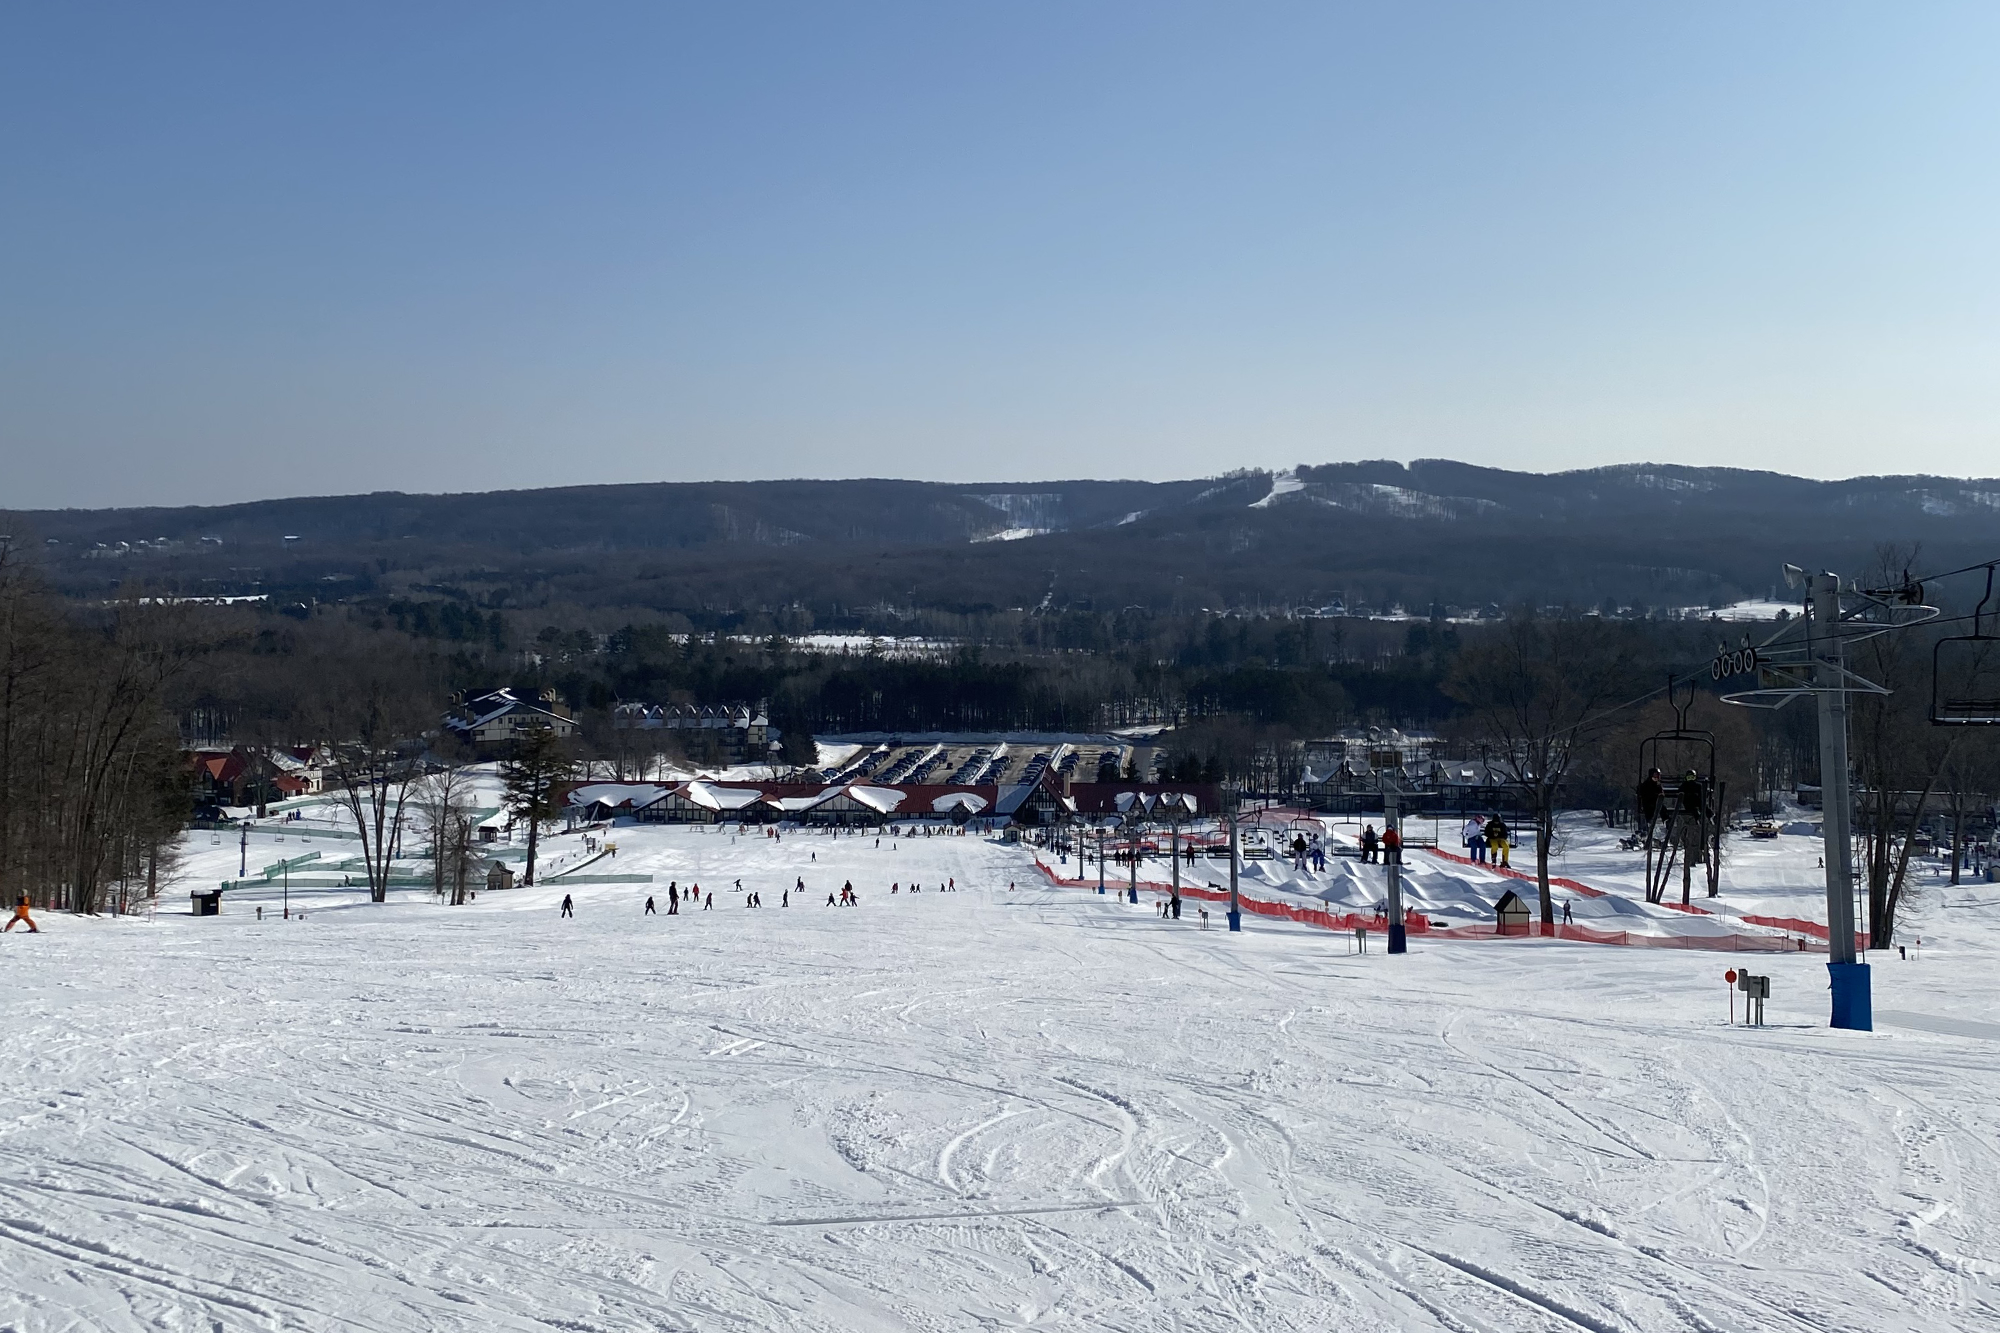 Groomer run at Boyne Highlands